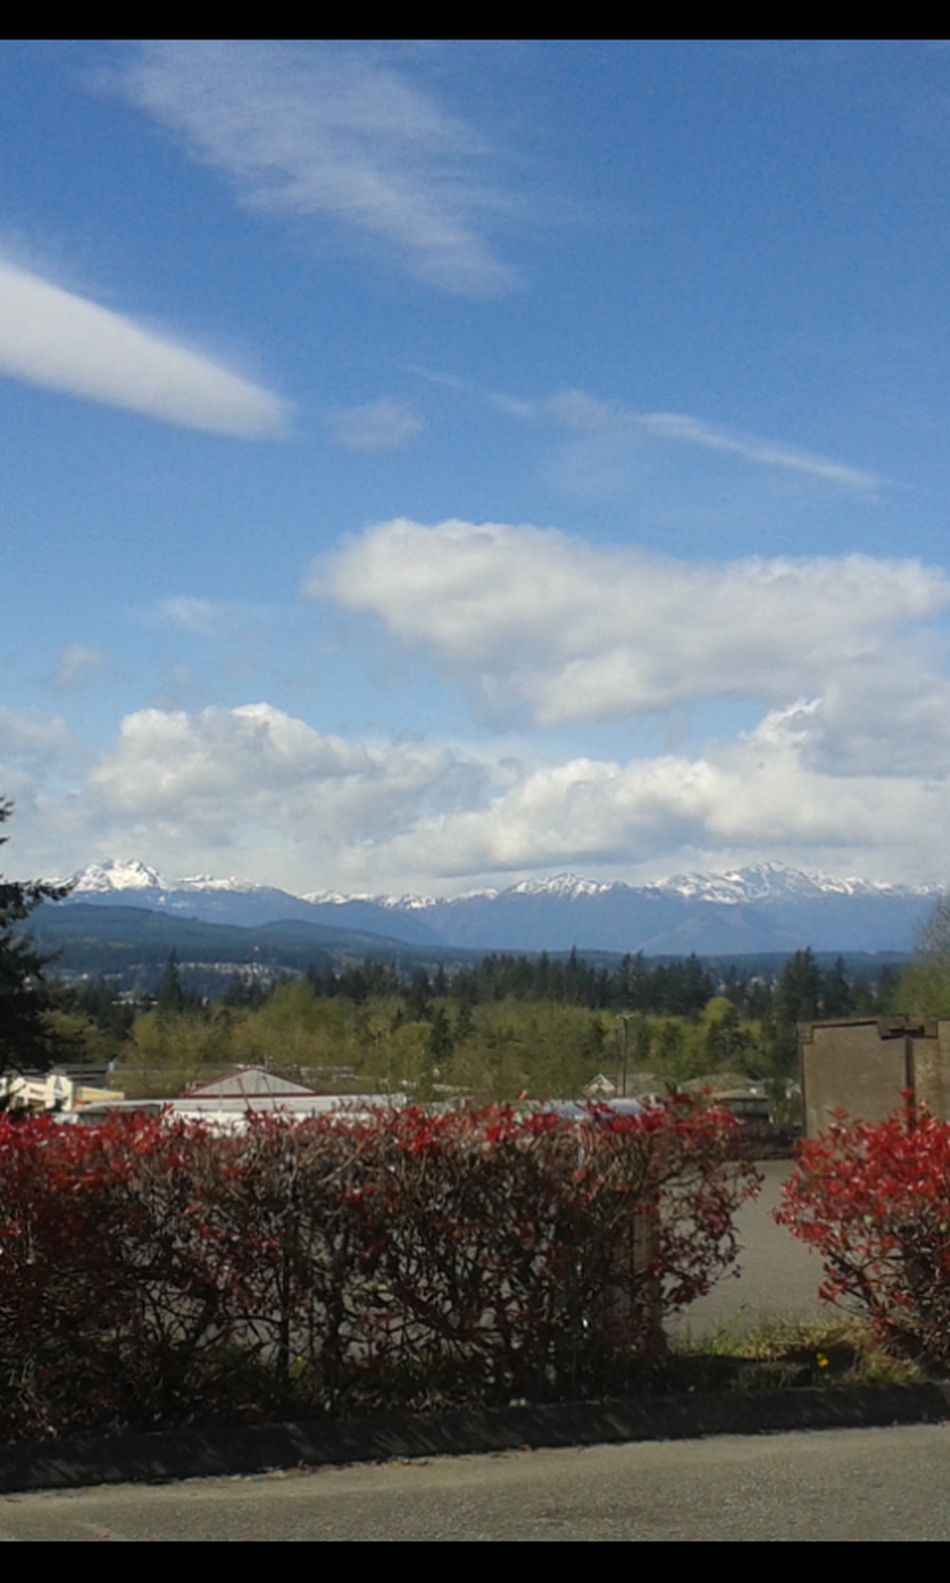 My Hometown Taking Photos Galaxy Ace Samsung Galaxy Camera Unedited The Purist Kitsap Peninsula Washington State Pacificnorthwest Olympic Mountains Mountain View Port Orchard Washington Enjoying Life Sky And Mountains Drivebyphotography Clouds And Sky Snowy Mountains